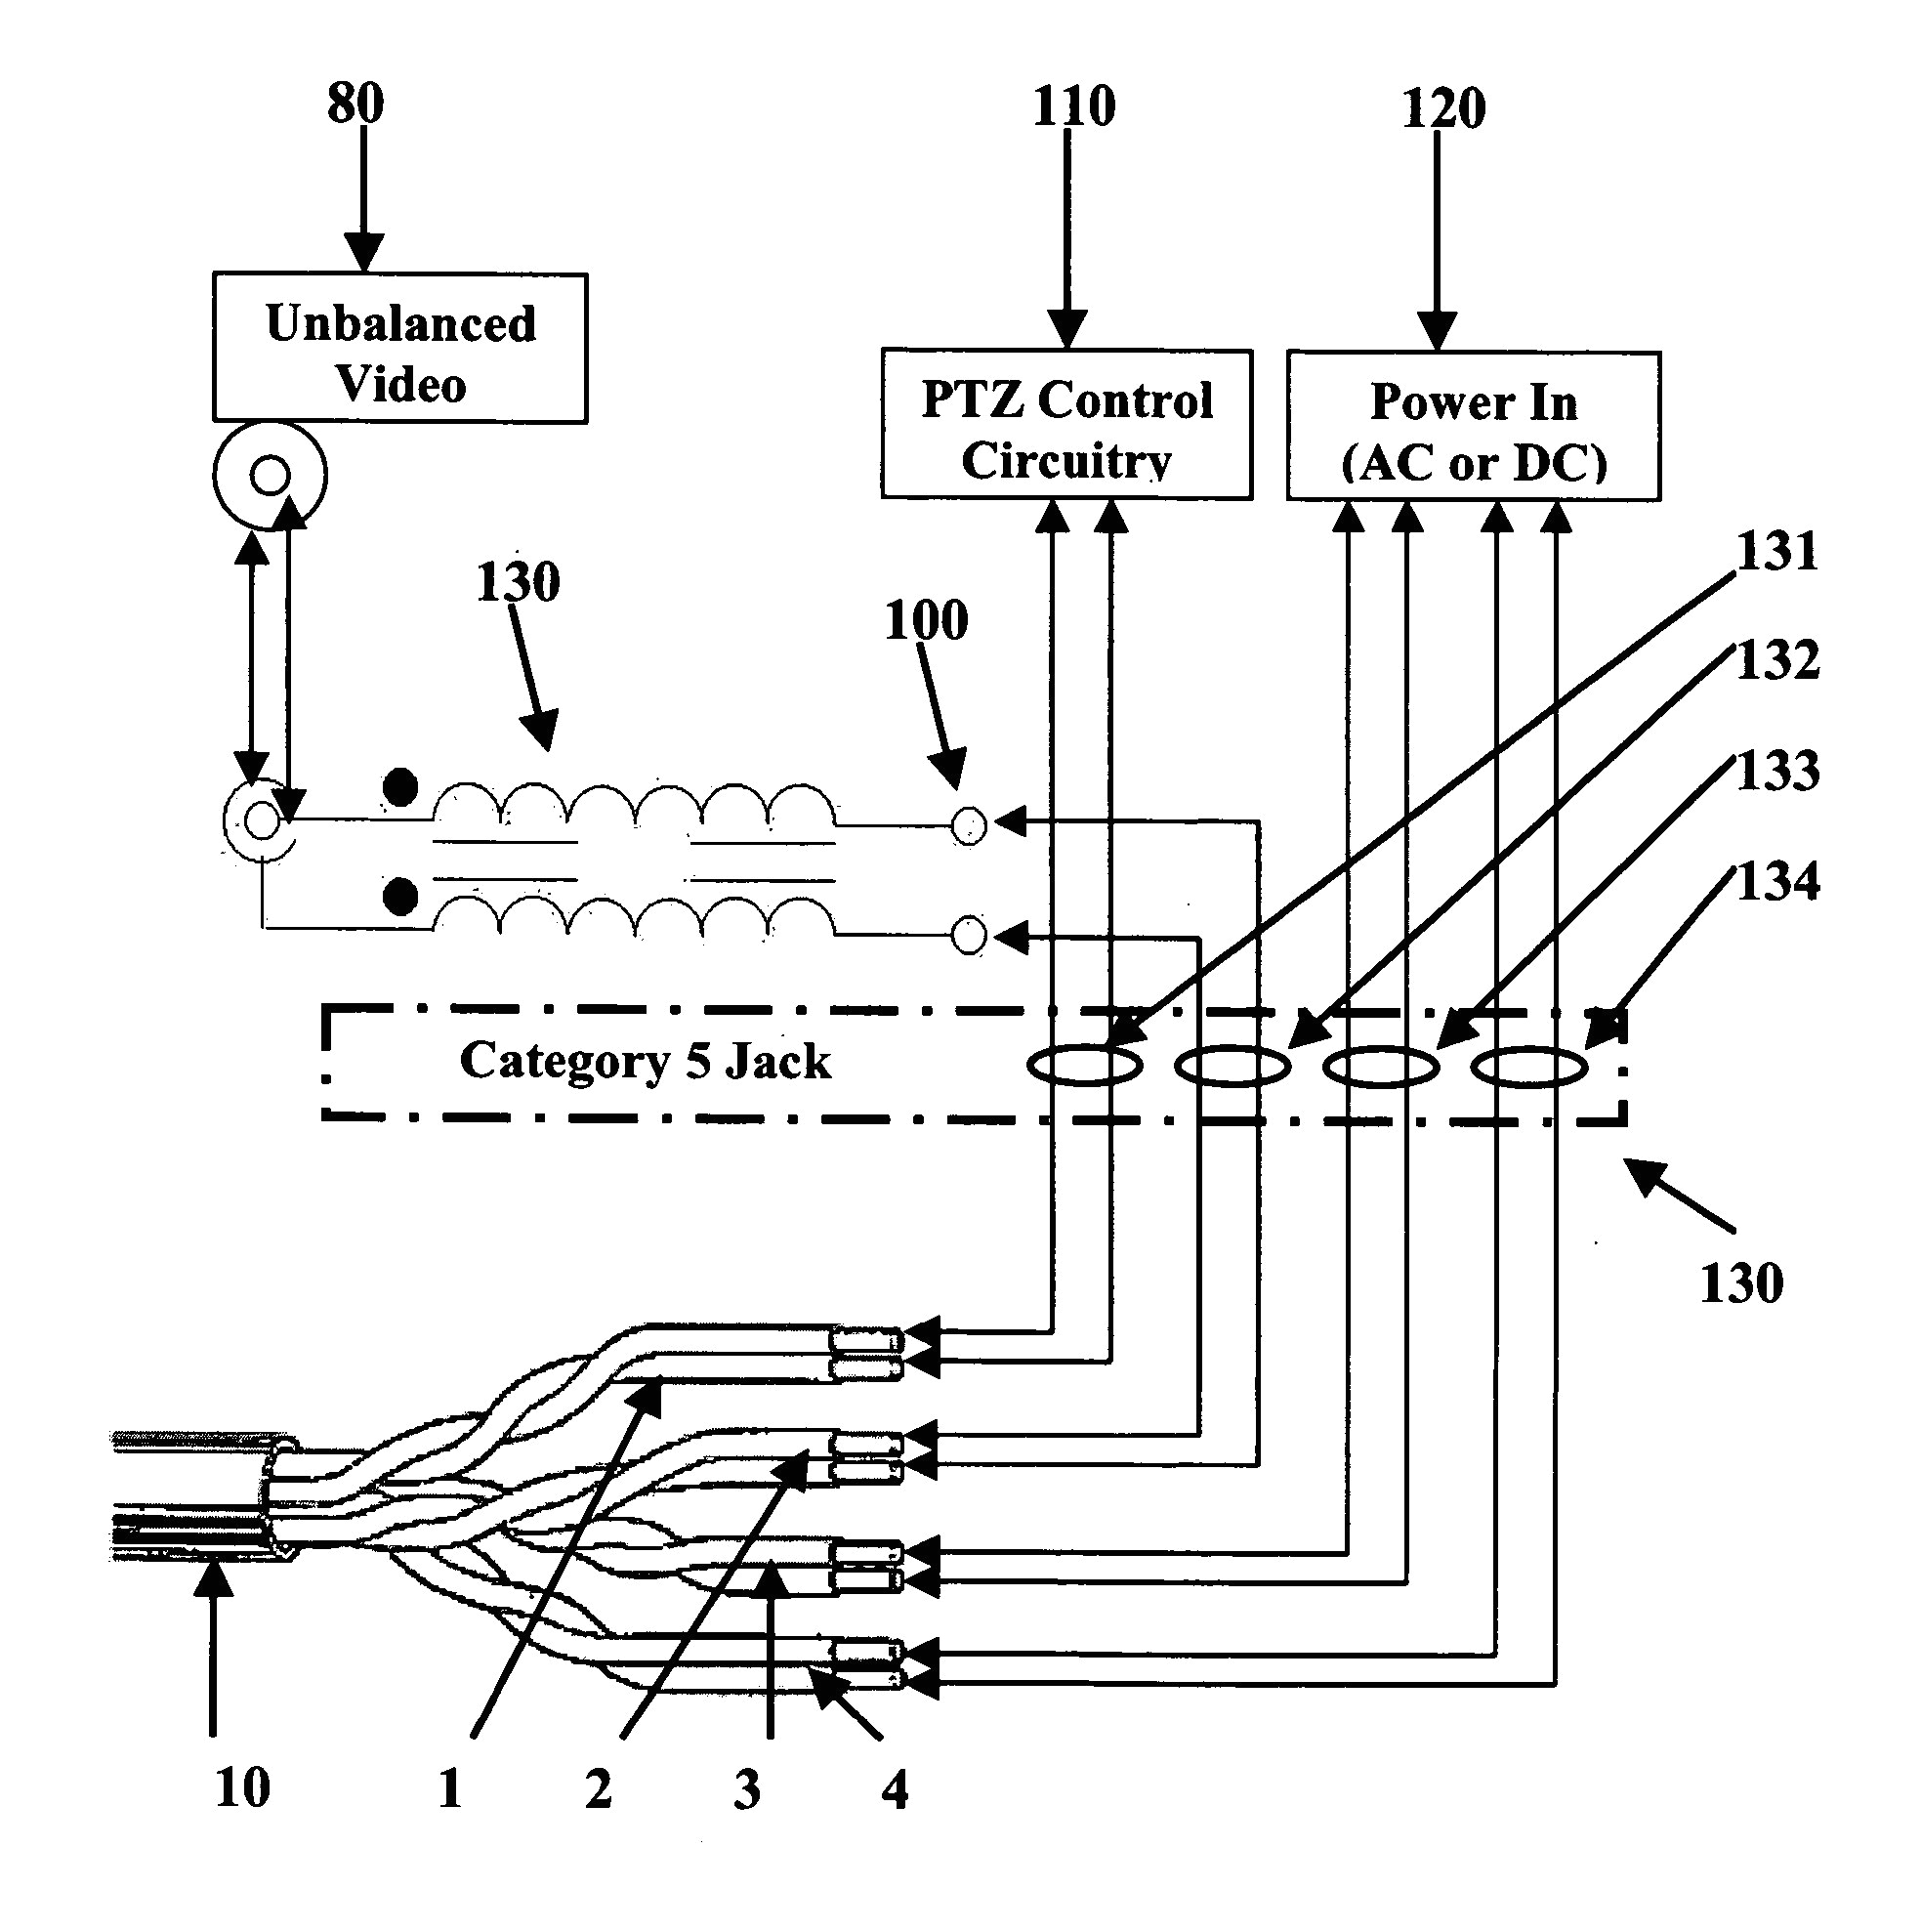 ac power cord wiring diagram wiring diagram databasecable wiring diagram